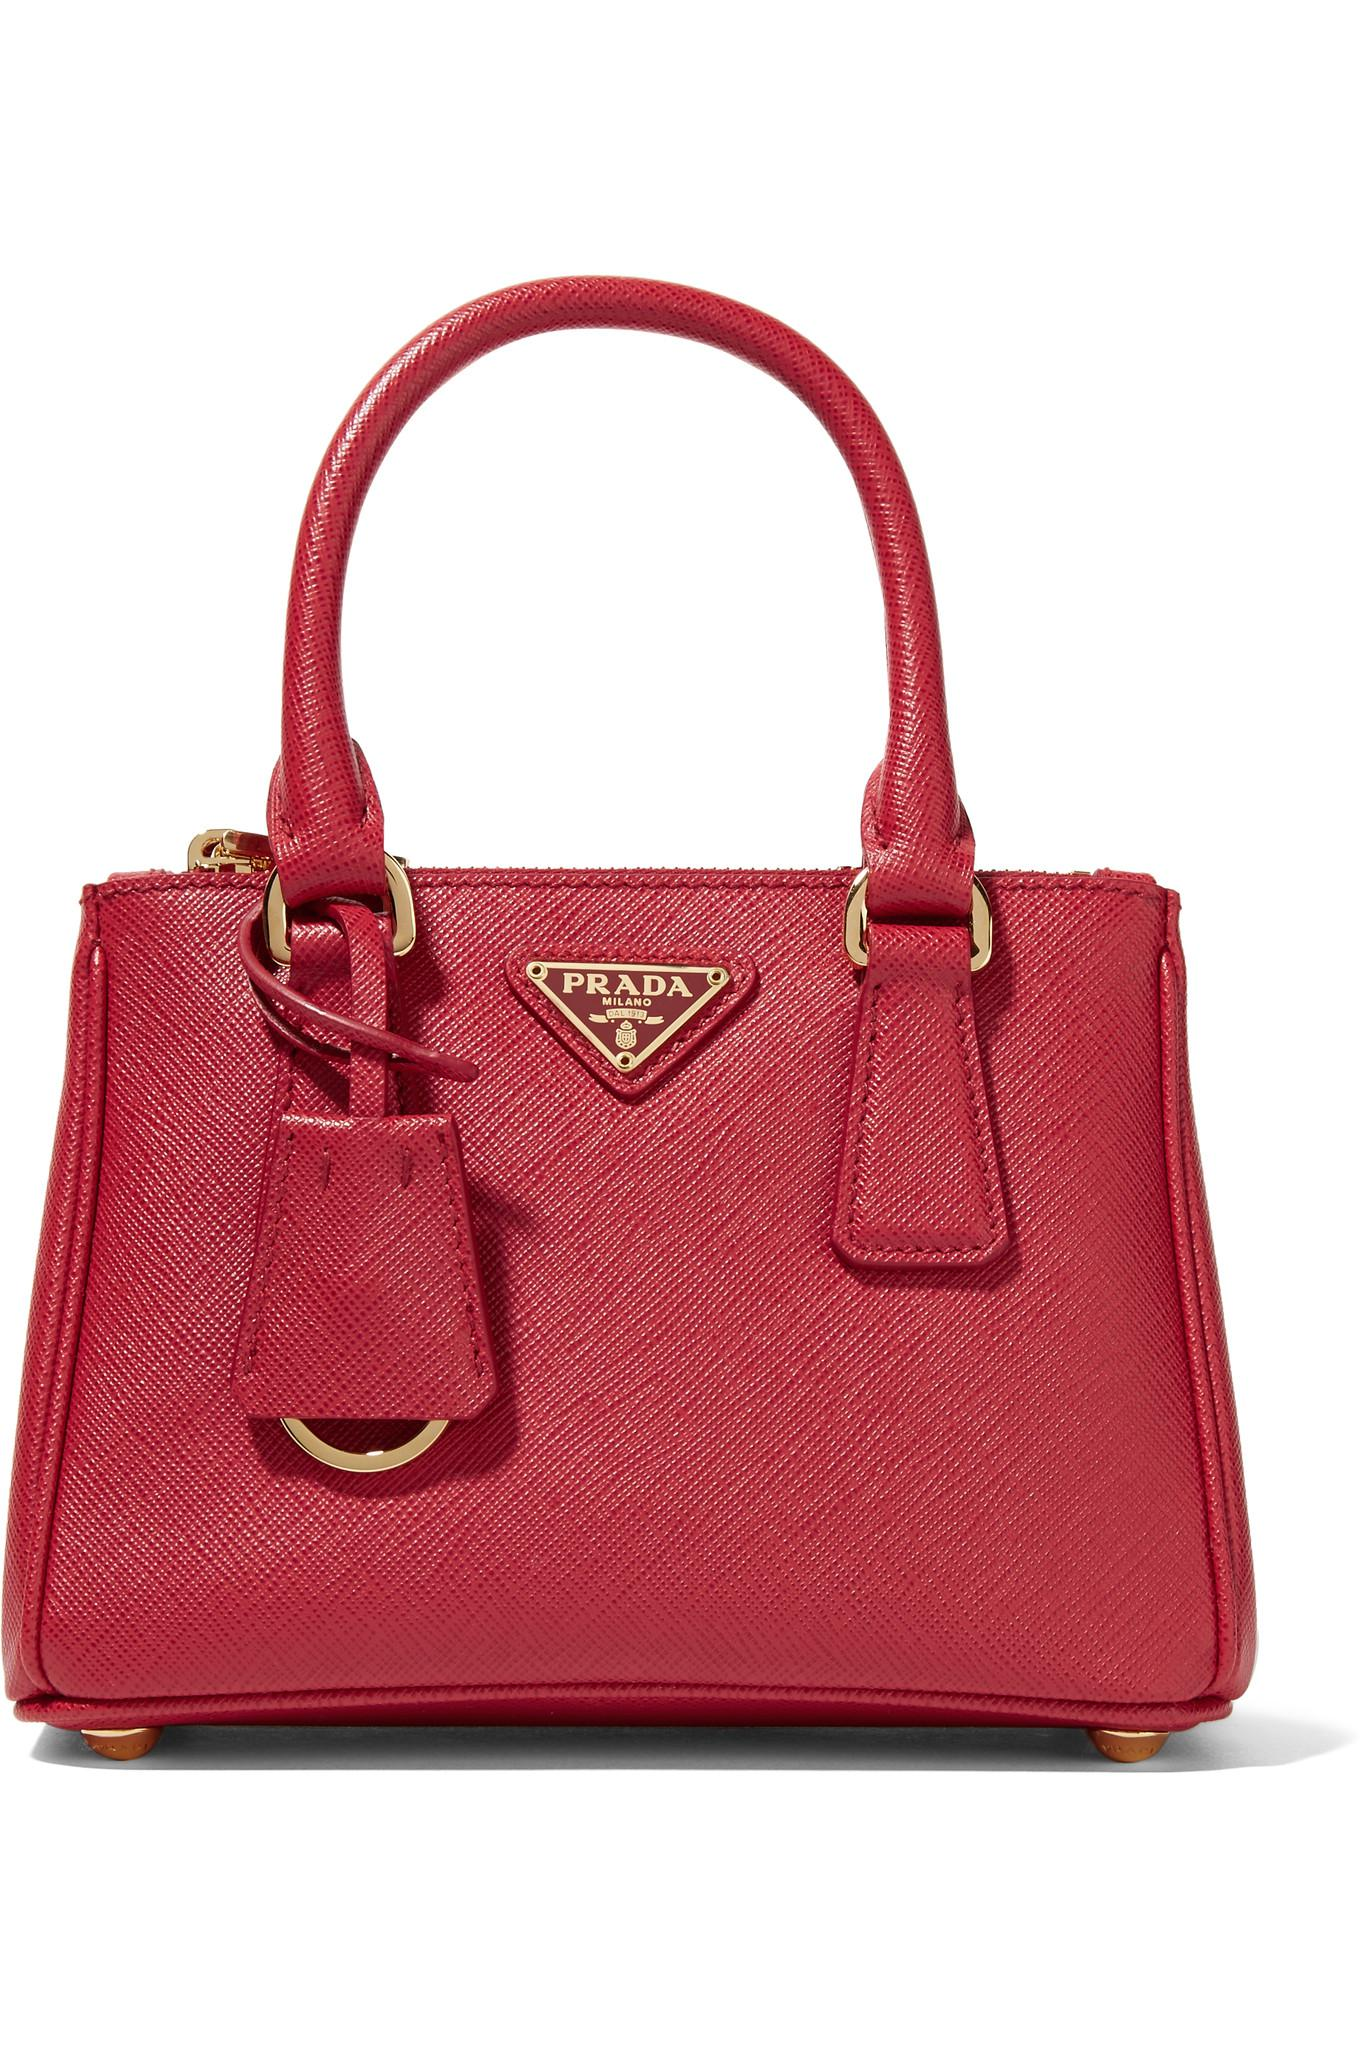 Lyst - Prada Galleria Baby Textured-Leather Tote in Red f1eaa4768c6cf